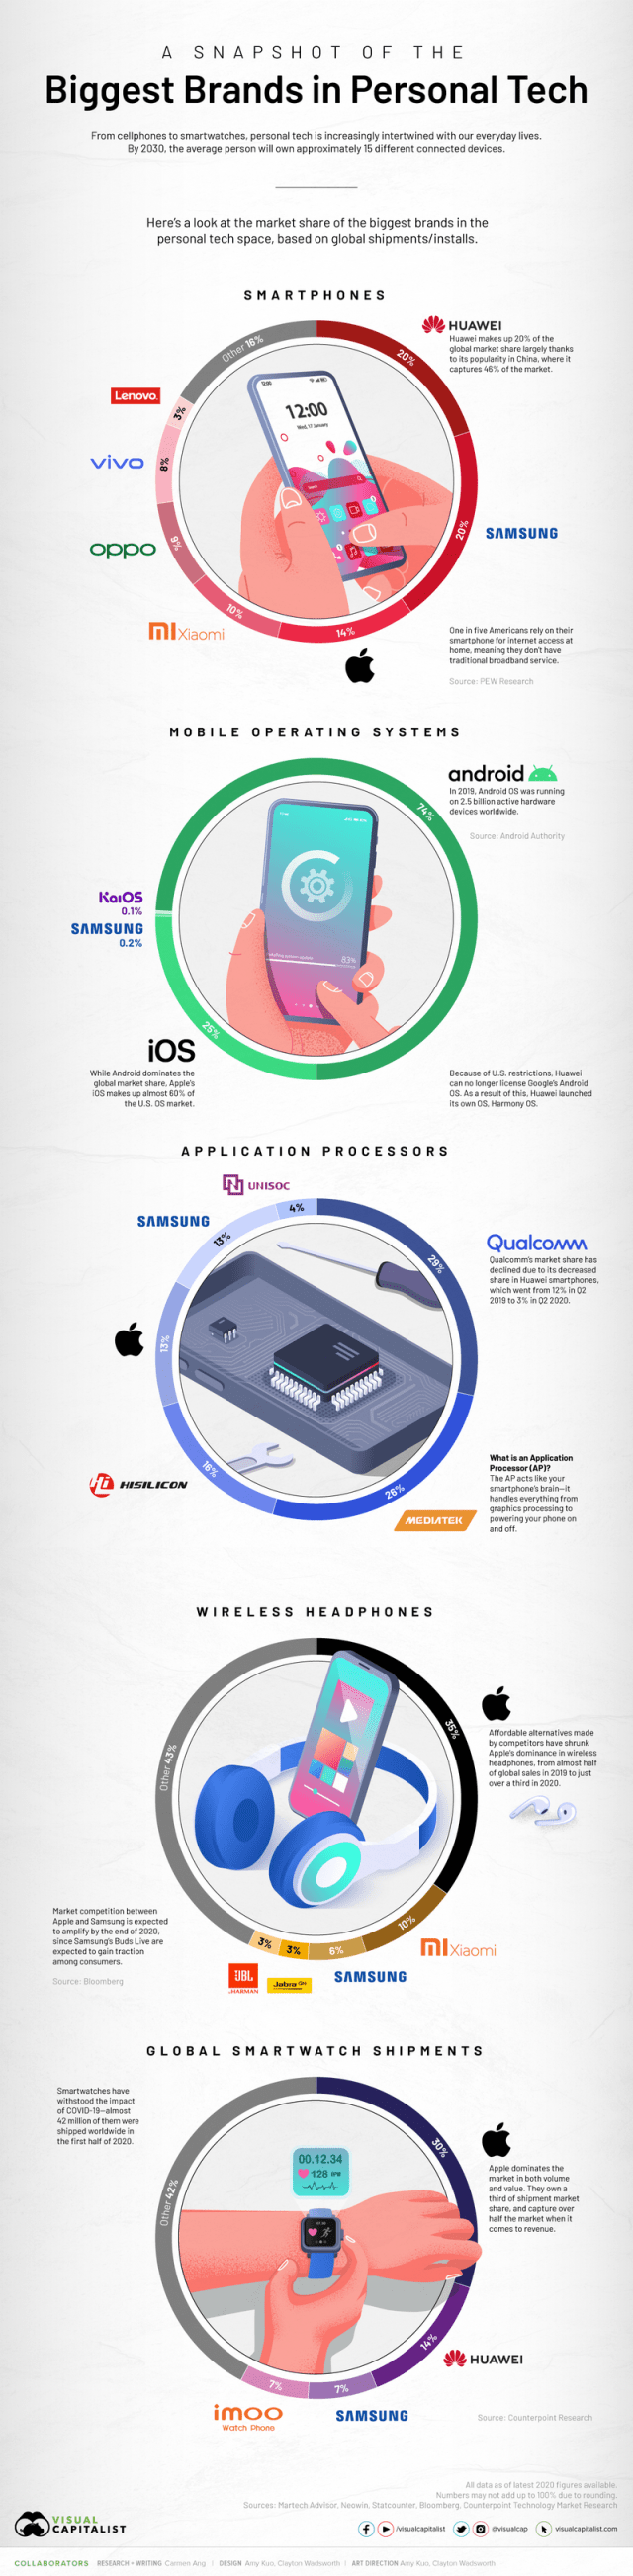 A Snapshot Of The Biggest Brands In Personal Tech